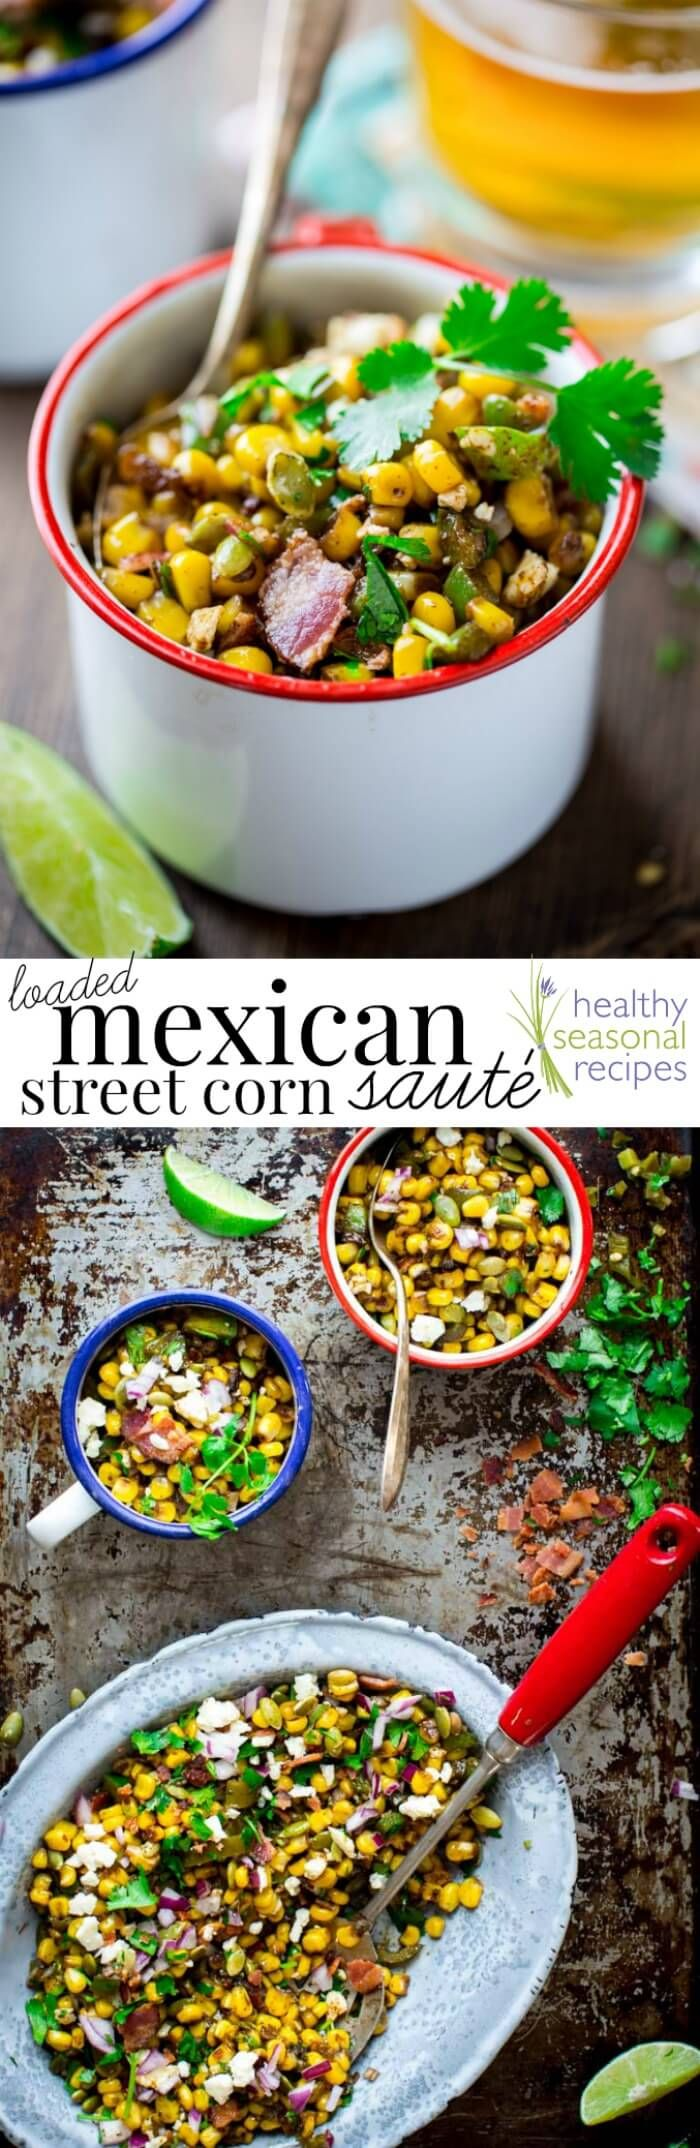 This Loaded Mexican Street Corn Sauté is an easy skillet variation of Mexican street corn made with frozen corn and topped with flavorful additions like pepitas, Cotija cheese, bacon, pickled jalapenos and cilantro. @healthyseasonal